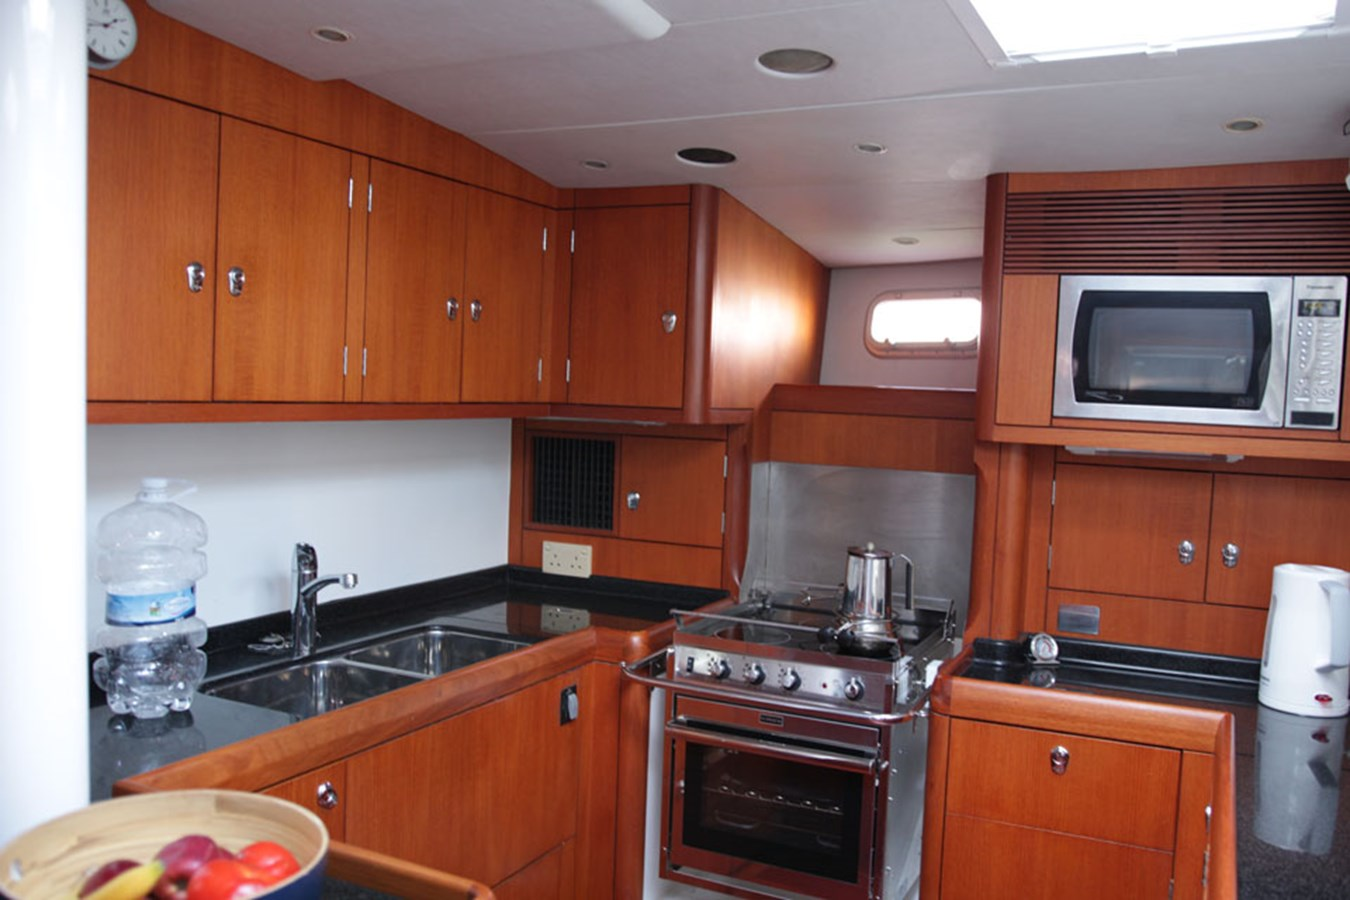 oyster-72-12 2005 OYSTER MARINE LTD Oyster 72 Cruising Sailboat 2707555